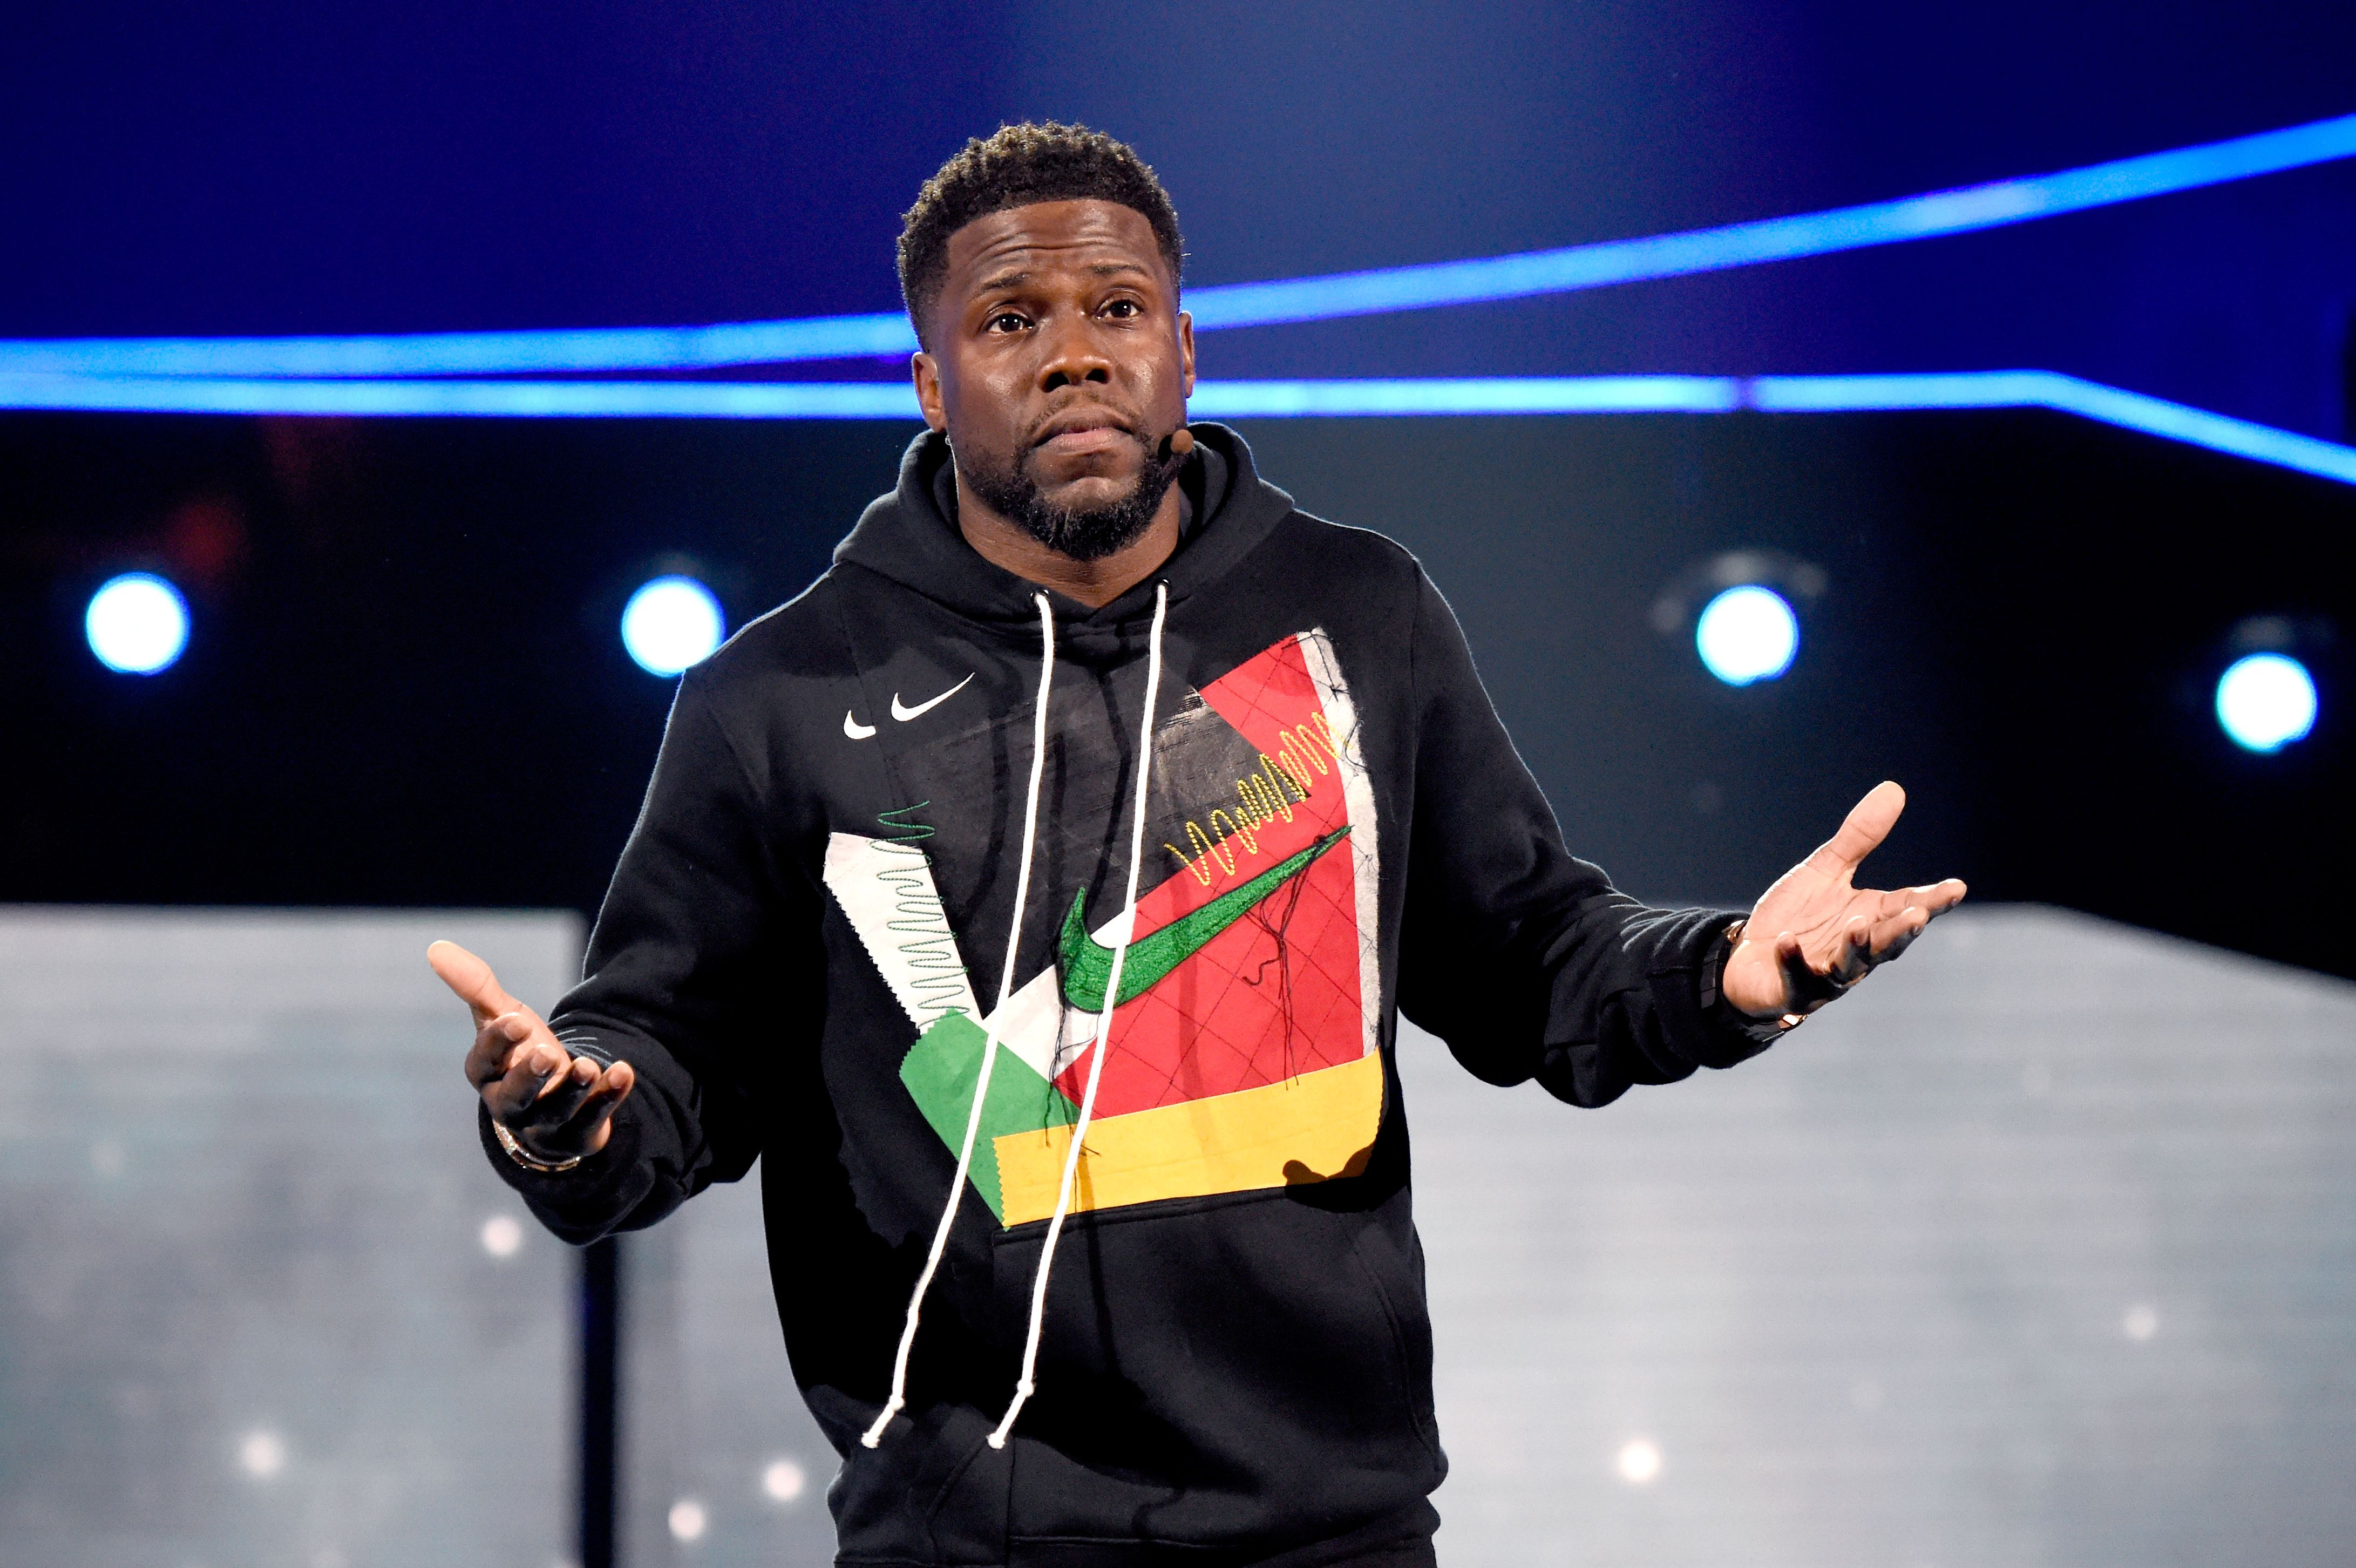 Kevin Hart Refuses to Apologize for Homophobic Tweets - Kevin Hart